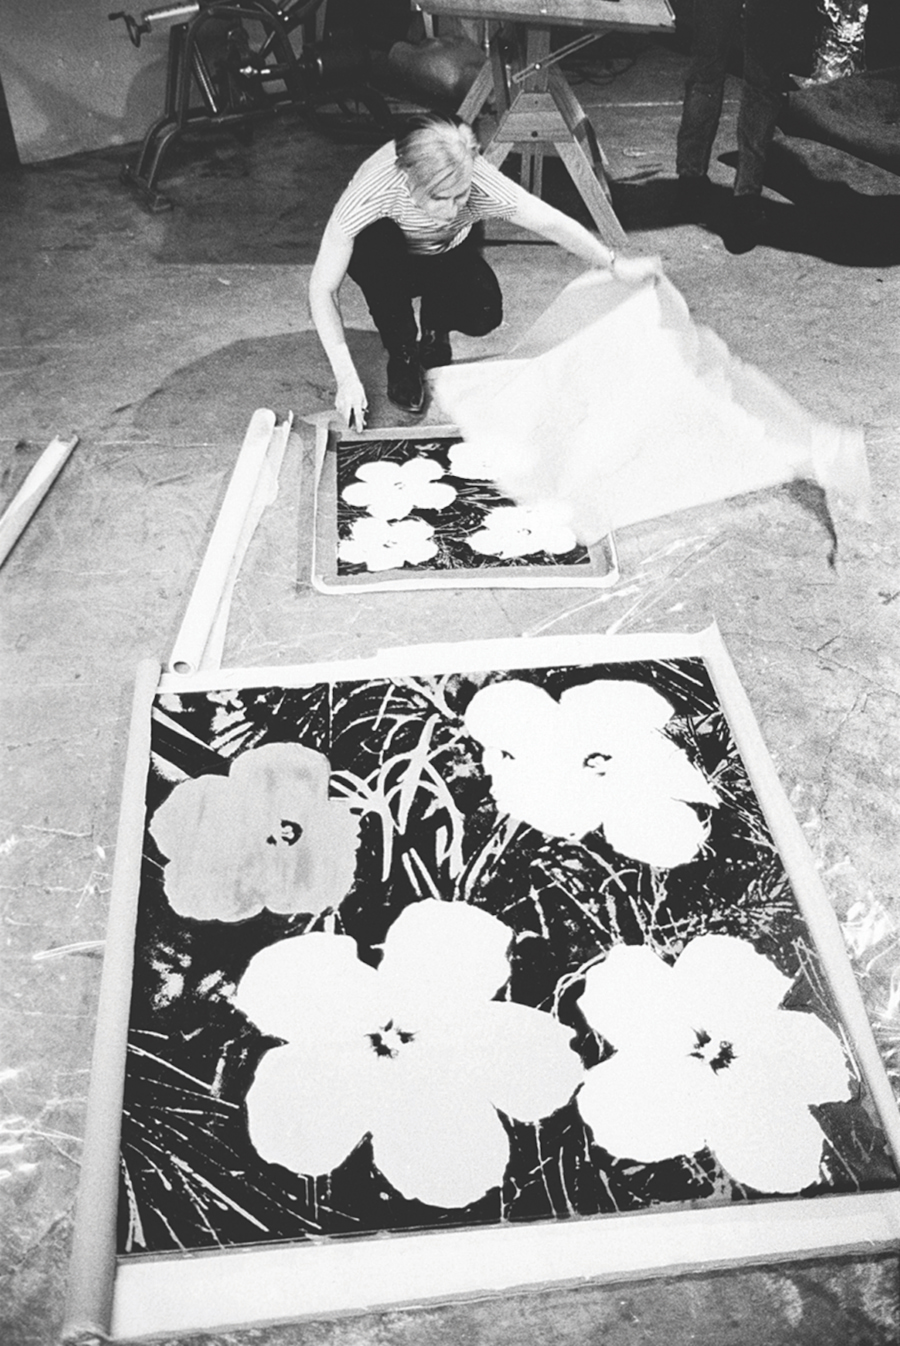 046-Warhol-silk-screening-Flowers-first-shown-at-Leo-Castelli-Gallery-1964